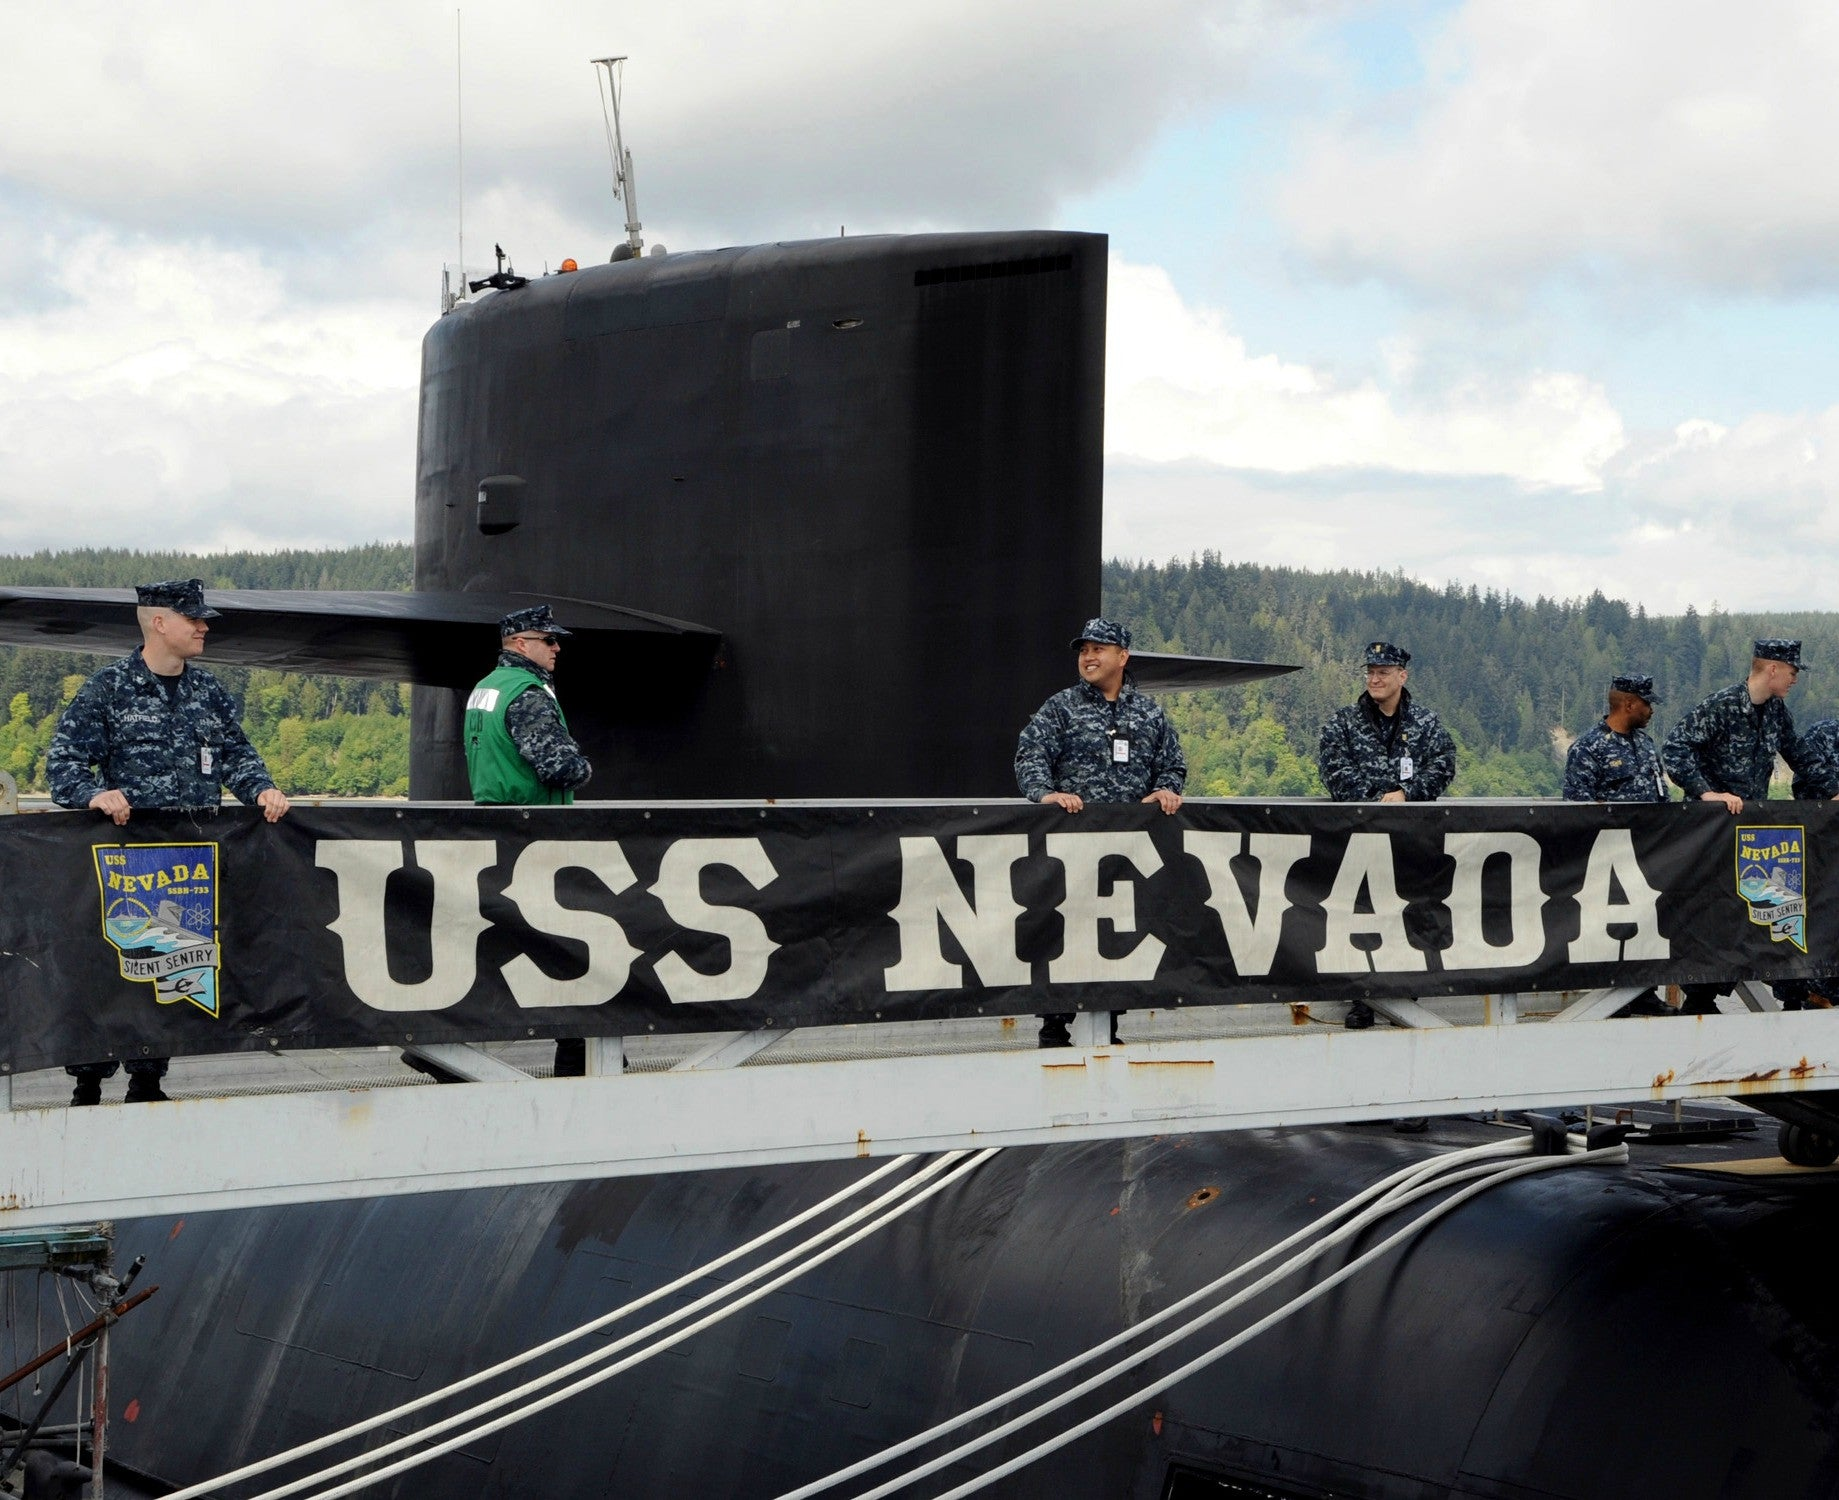 "Submarine USS Nevada SSBN-733 Bangor, WA May 6, 2010 - 8 x 10"" Photograph"